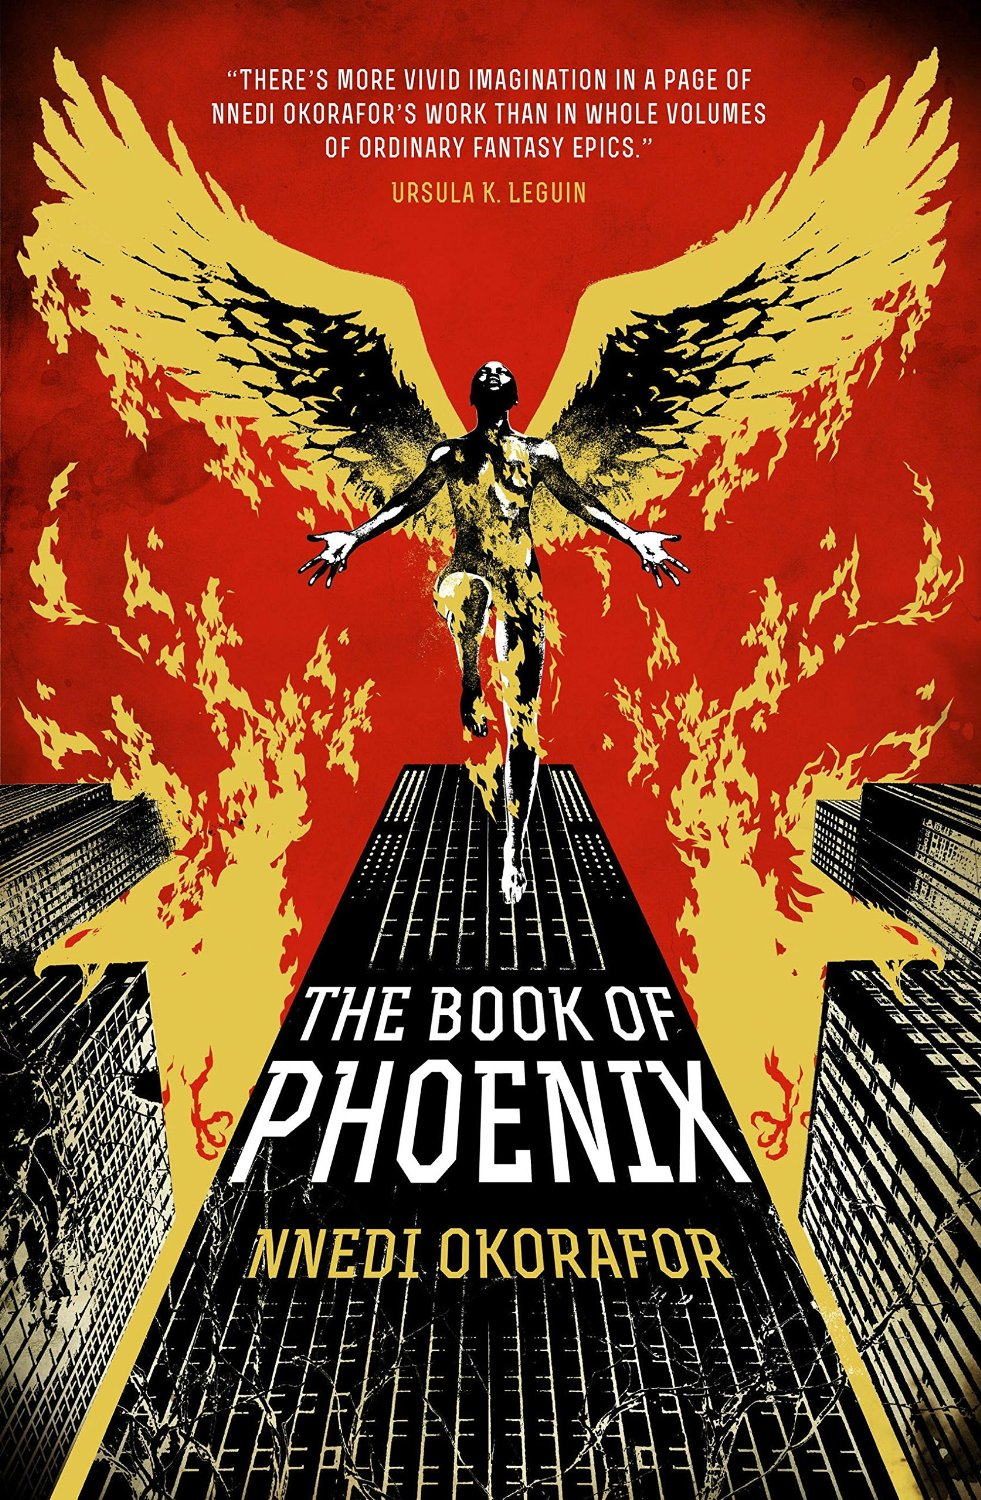 The Book Of Phoenix by Nnedi Okorafor book review